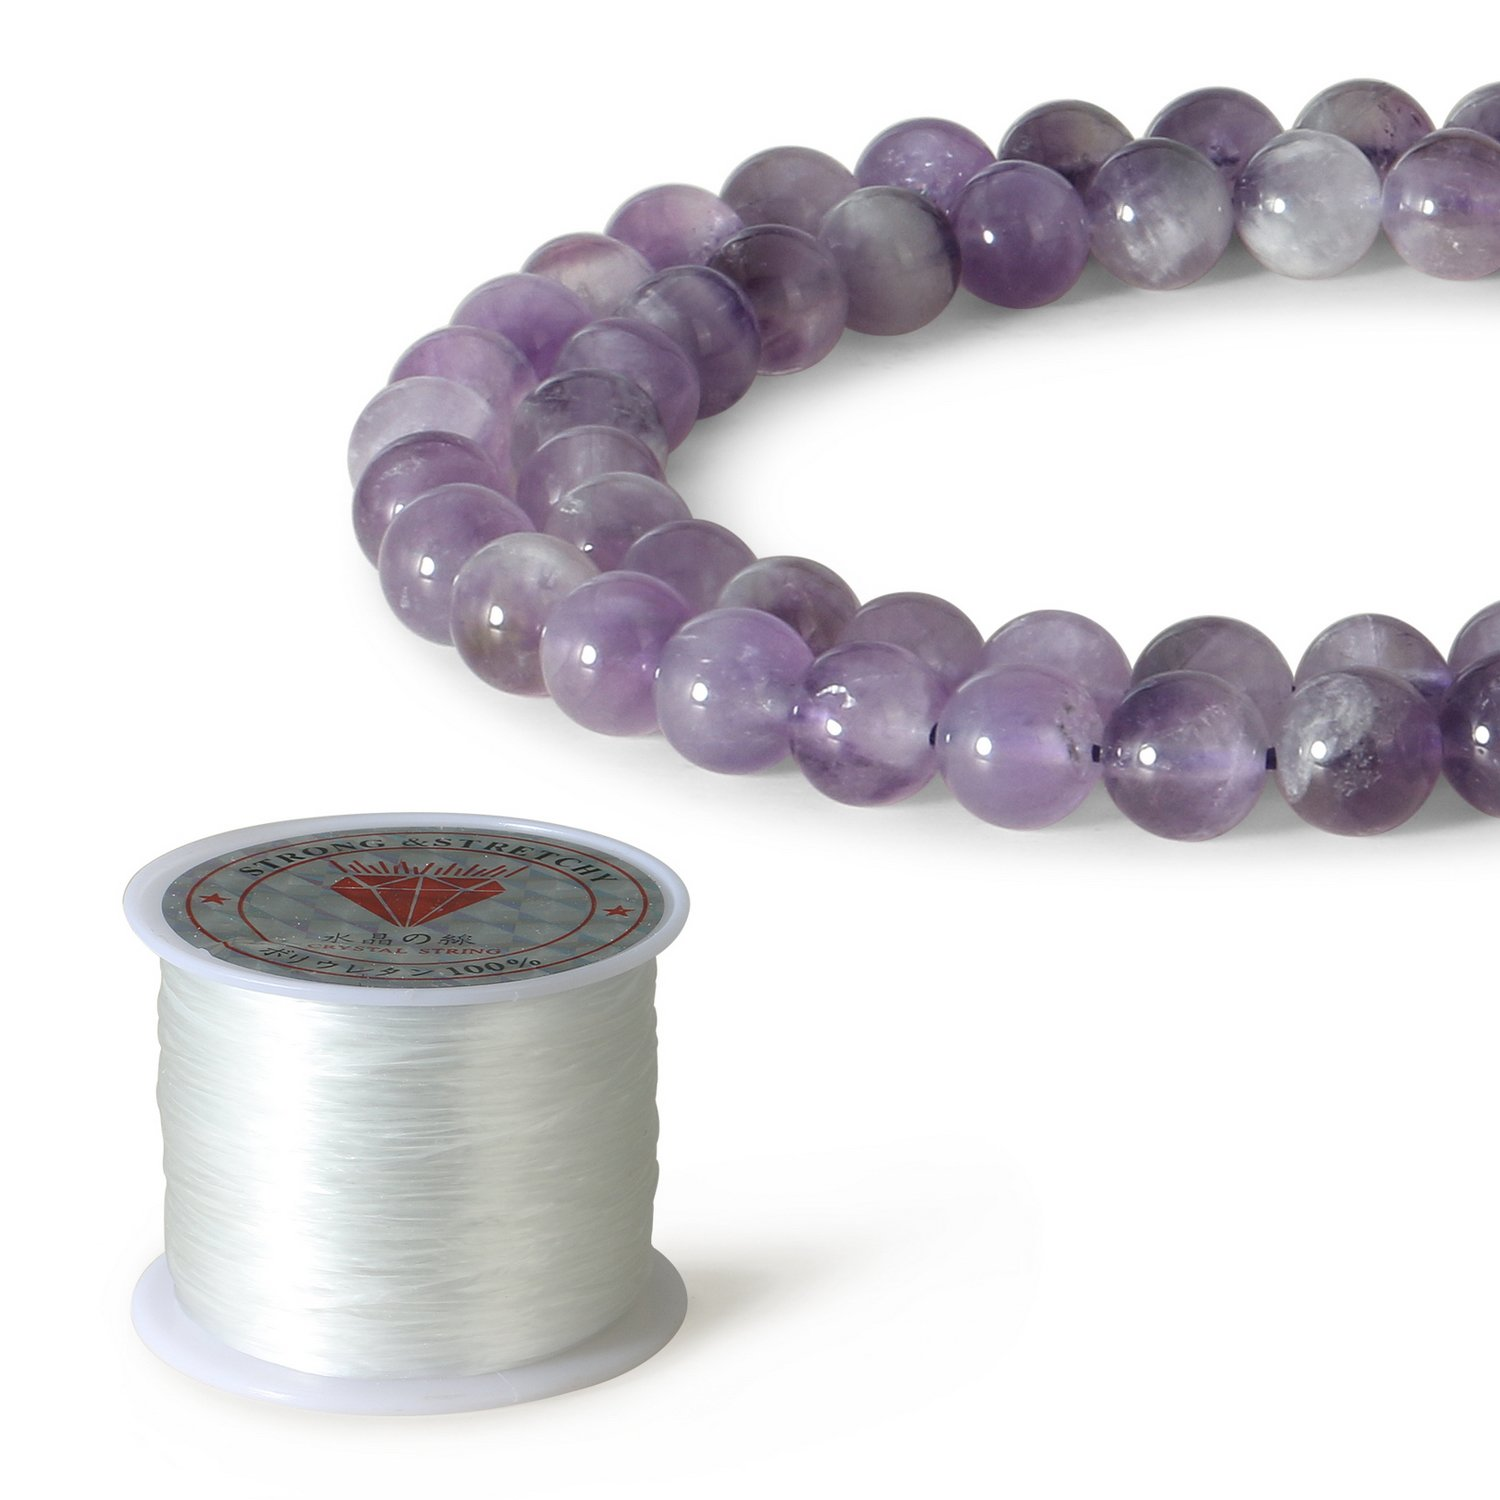 CHARMINGO 8mm Natural Amethyst Purple Quartz Gemstone Round Loose Beads for Jewelry Making (45-48pcs)